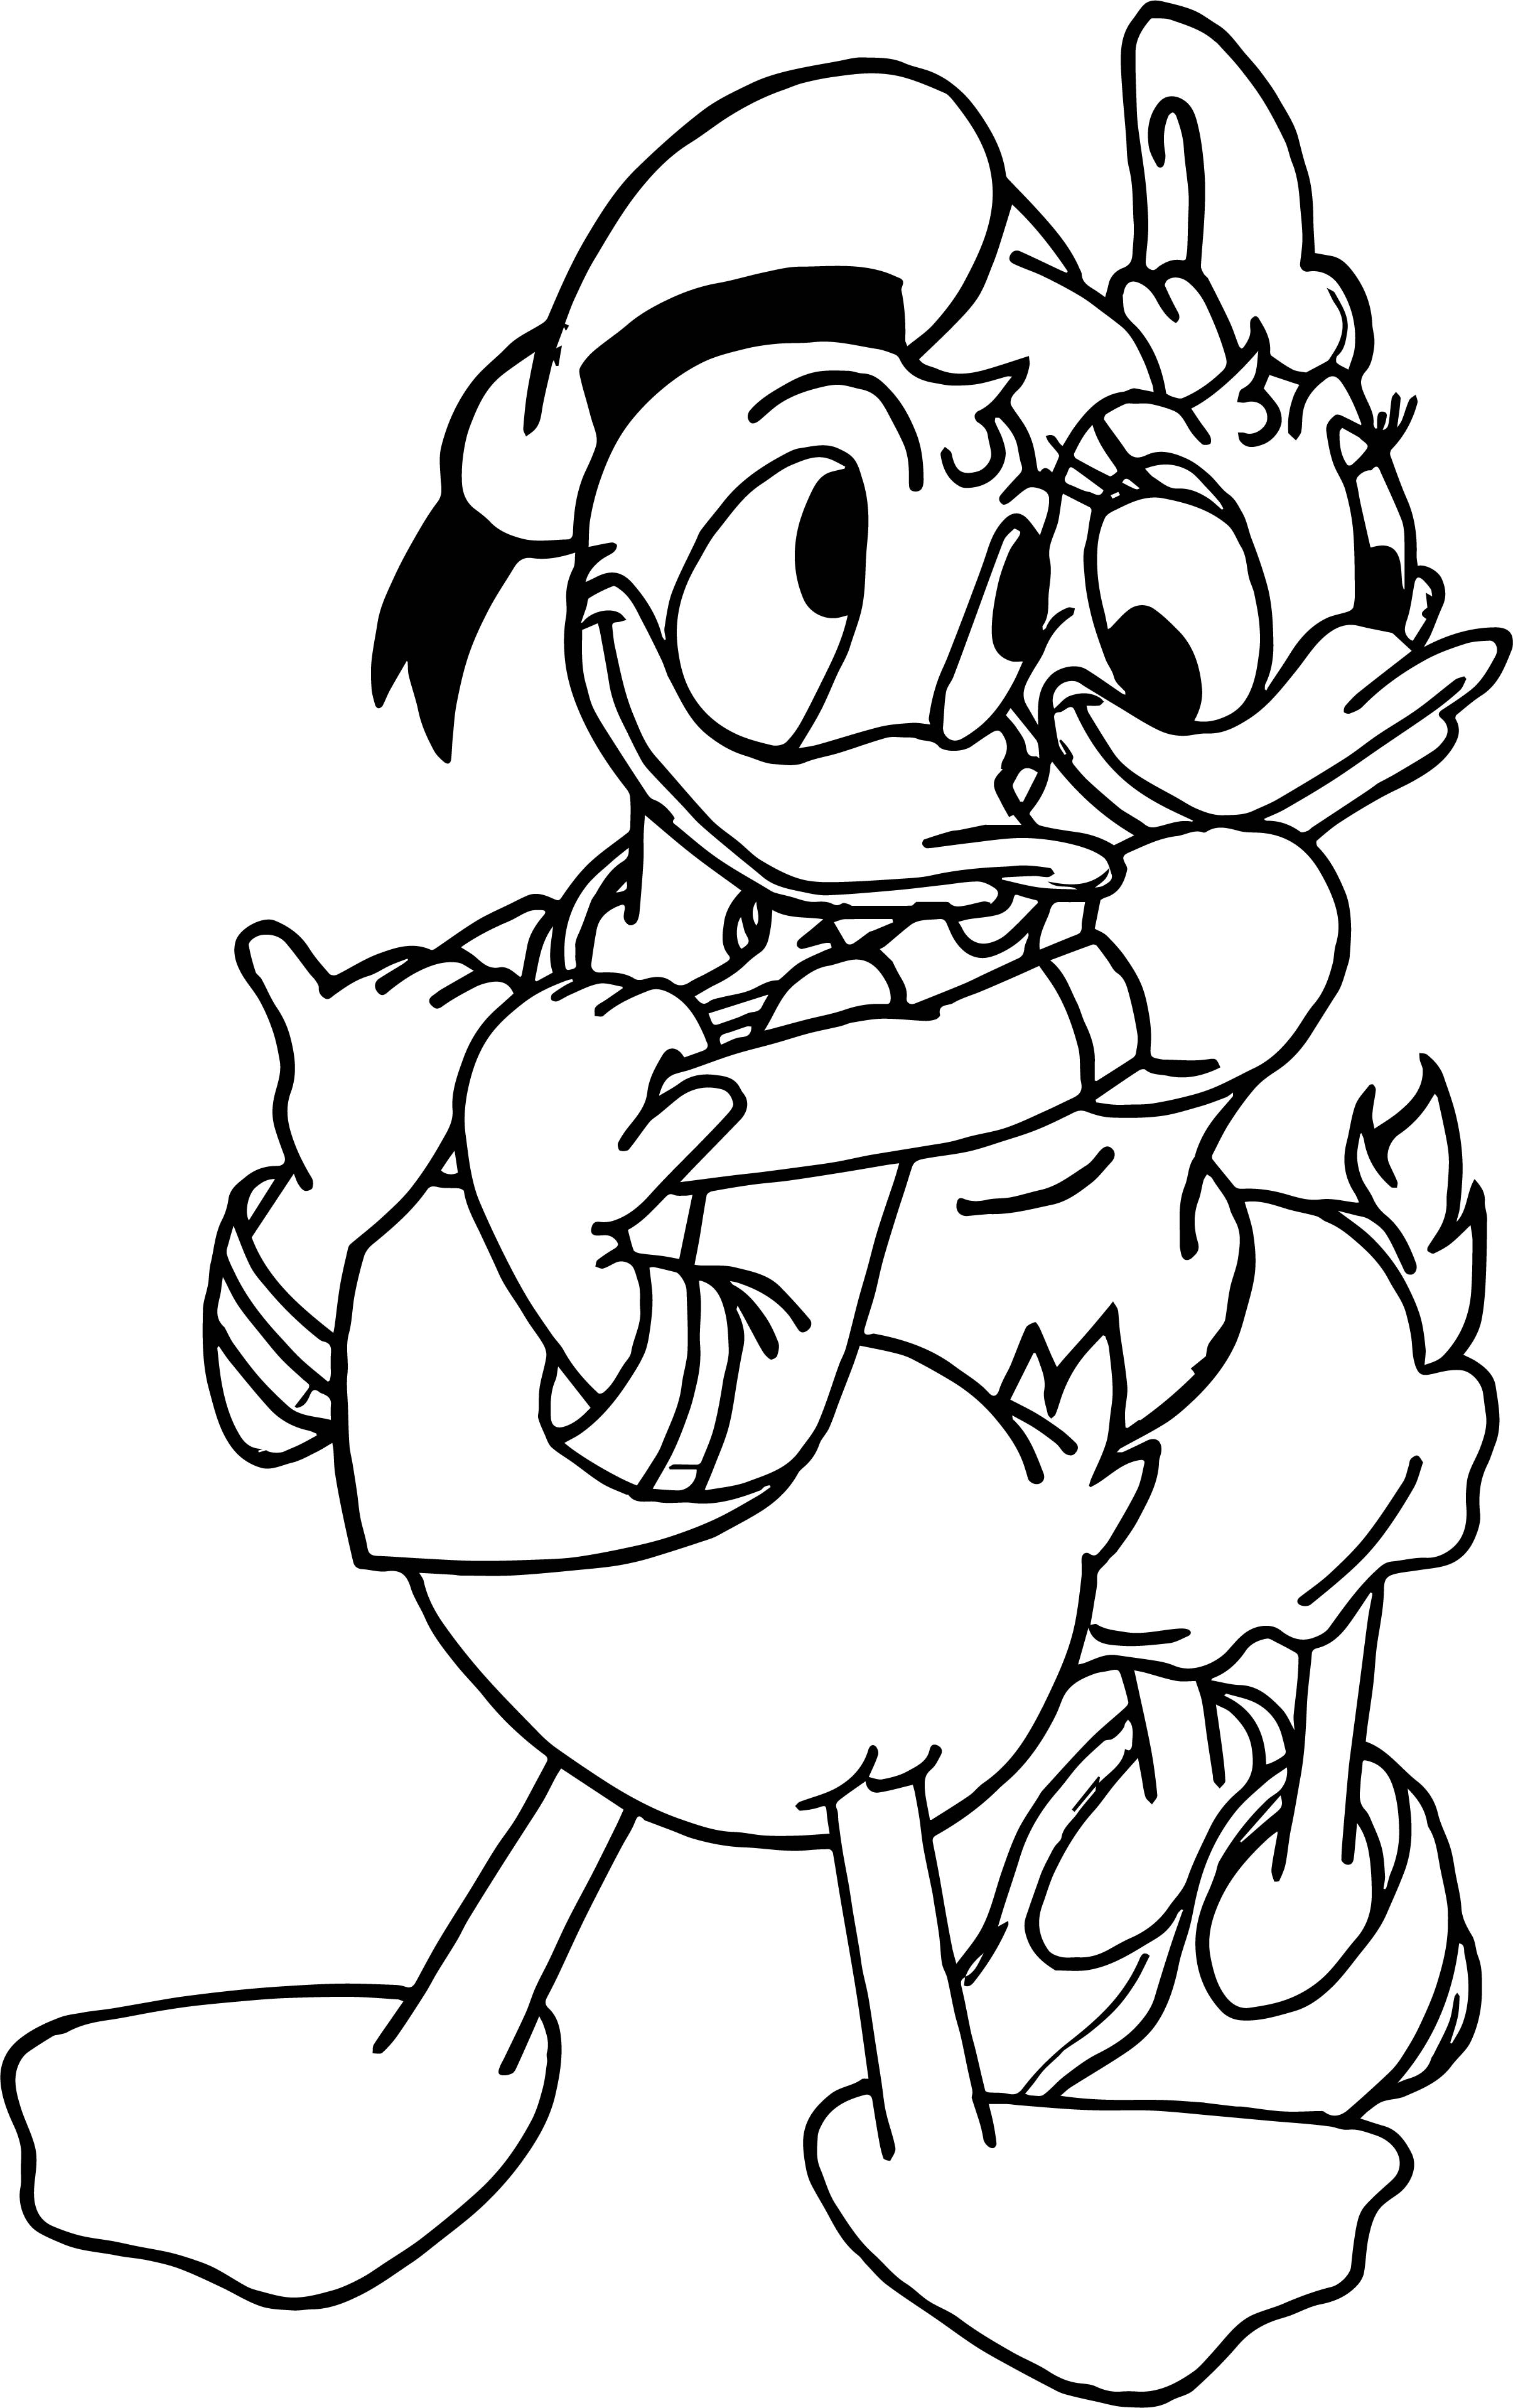 Disney Donald Duck And Daisy Duck Murals For Baby Bedroom Decoration Ideas Coloring Page